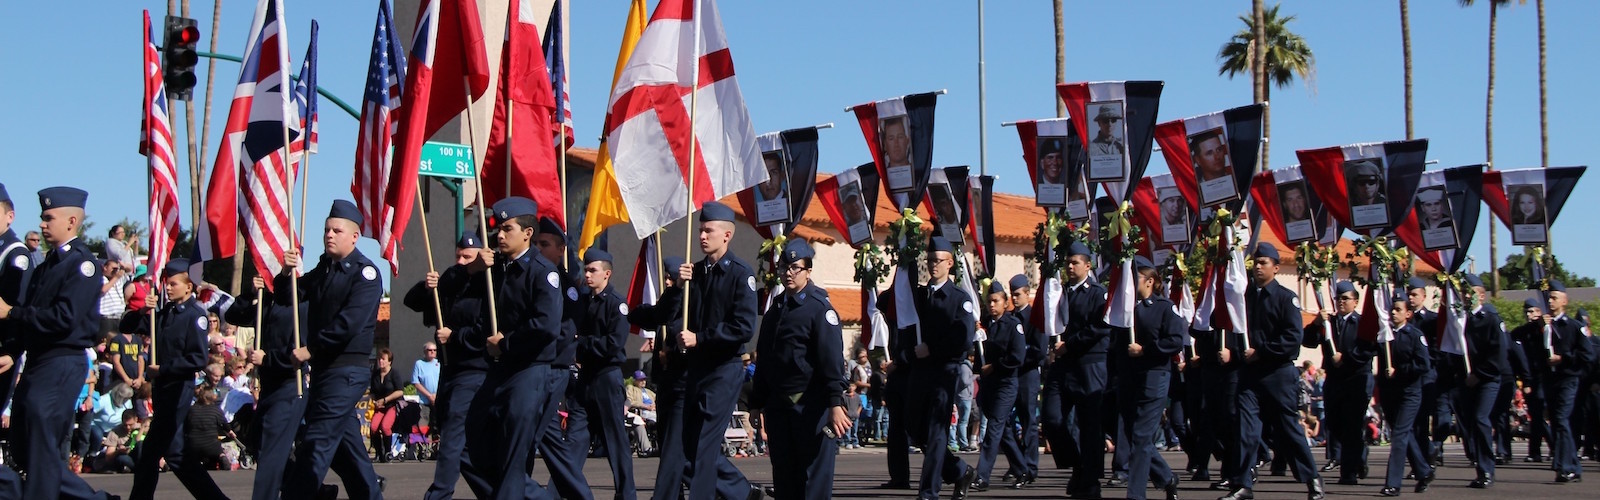 East Valley Veterans Parade AZ fallen